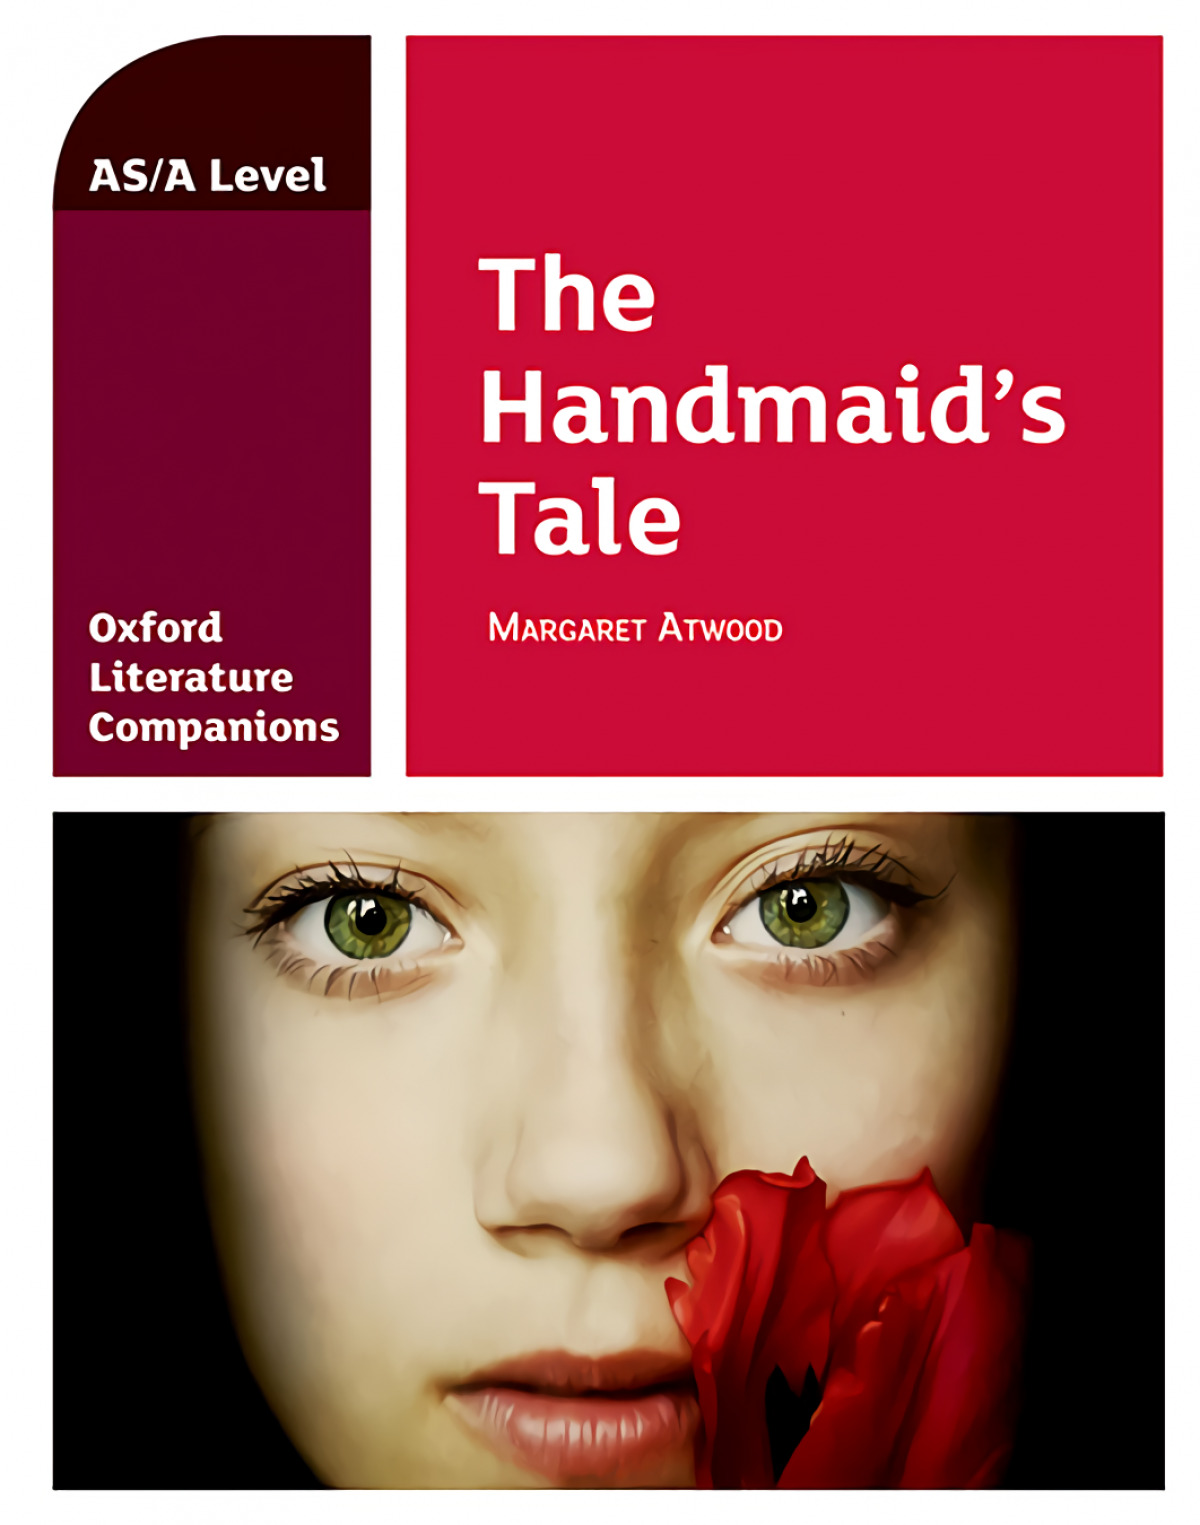 Oxford Literature Companions: The Handmaid's Tale: Margaret Atwood